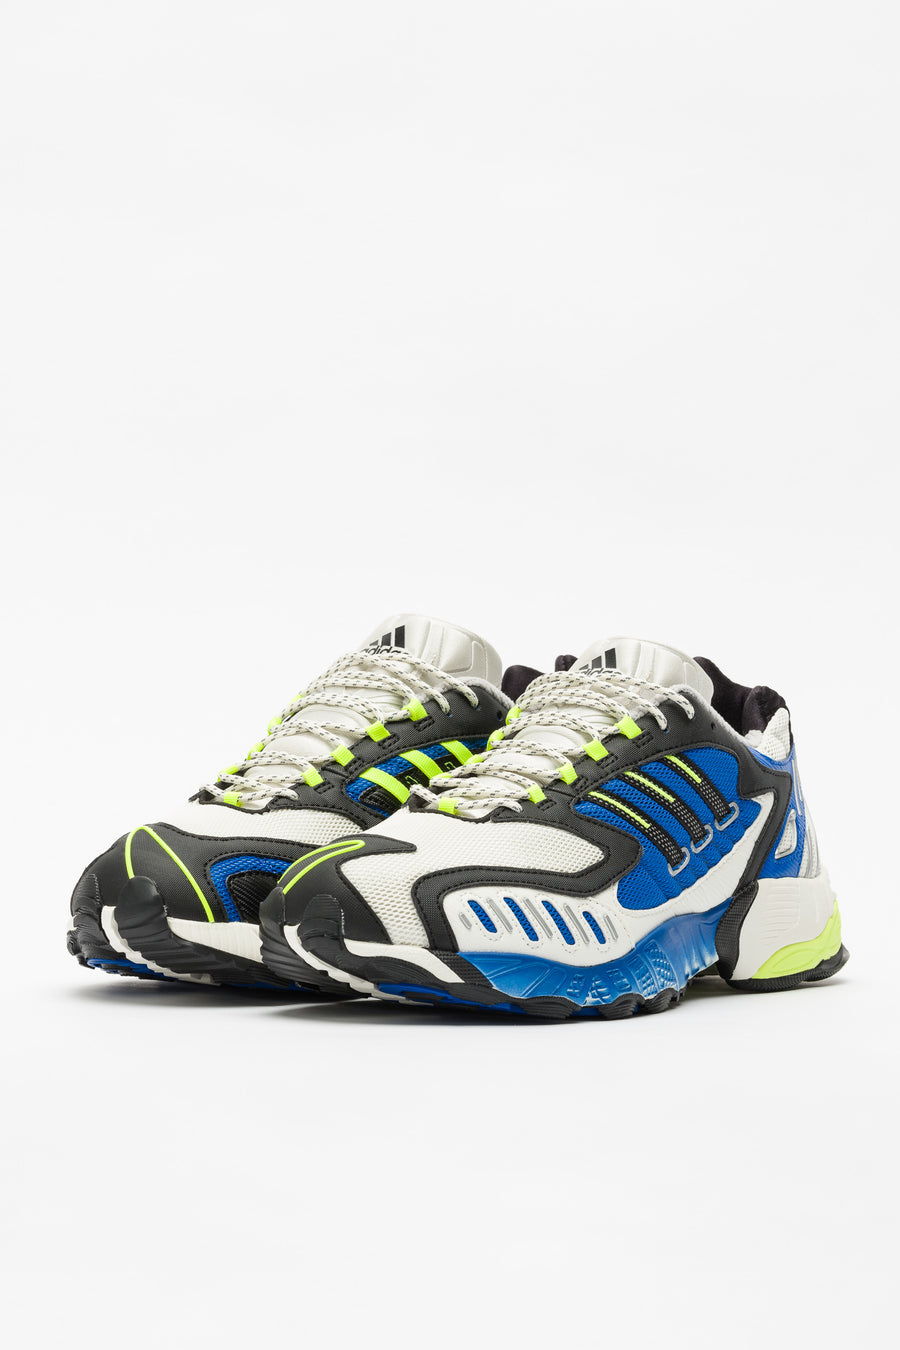 adidas Consortium Torsion TRDC in Blue/Yellow - Notre